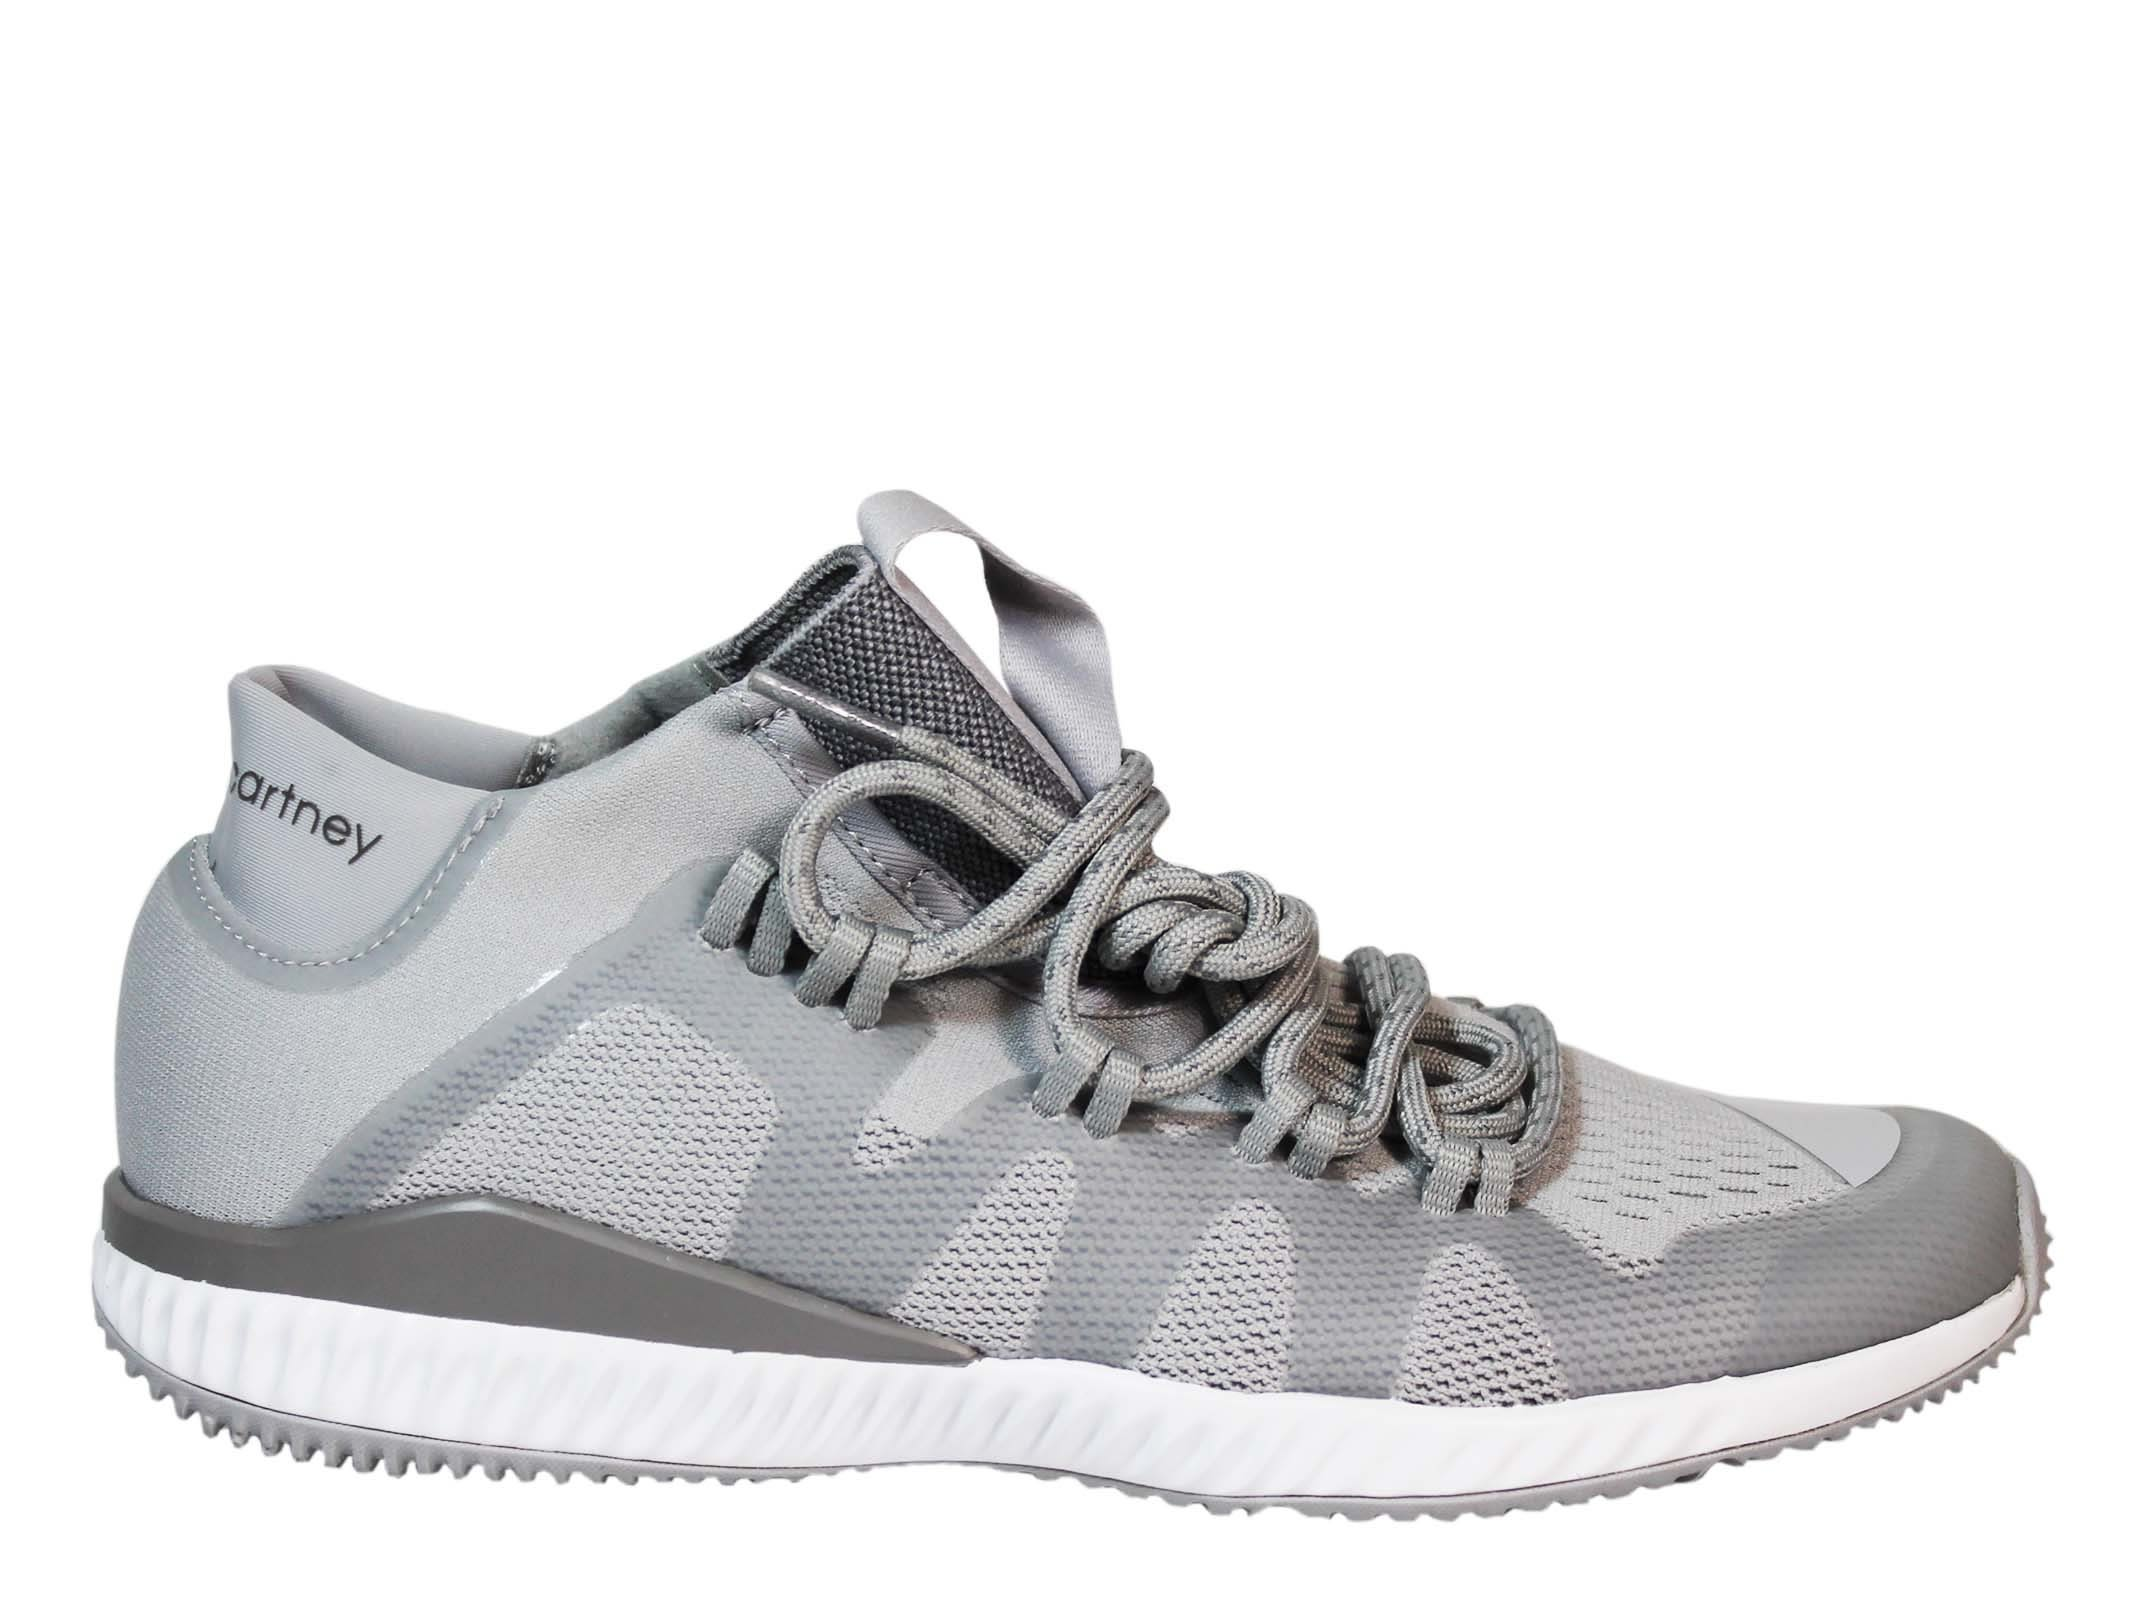 Adidas by Stella McCartney Grey Crazy Train Low Sneakers